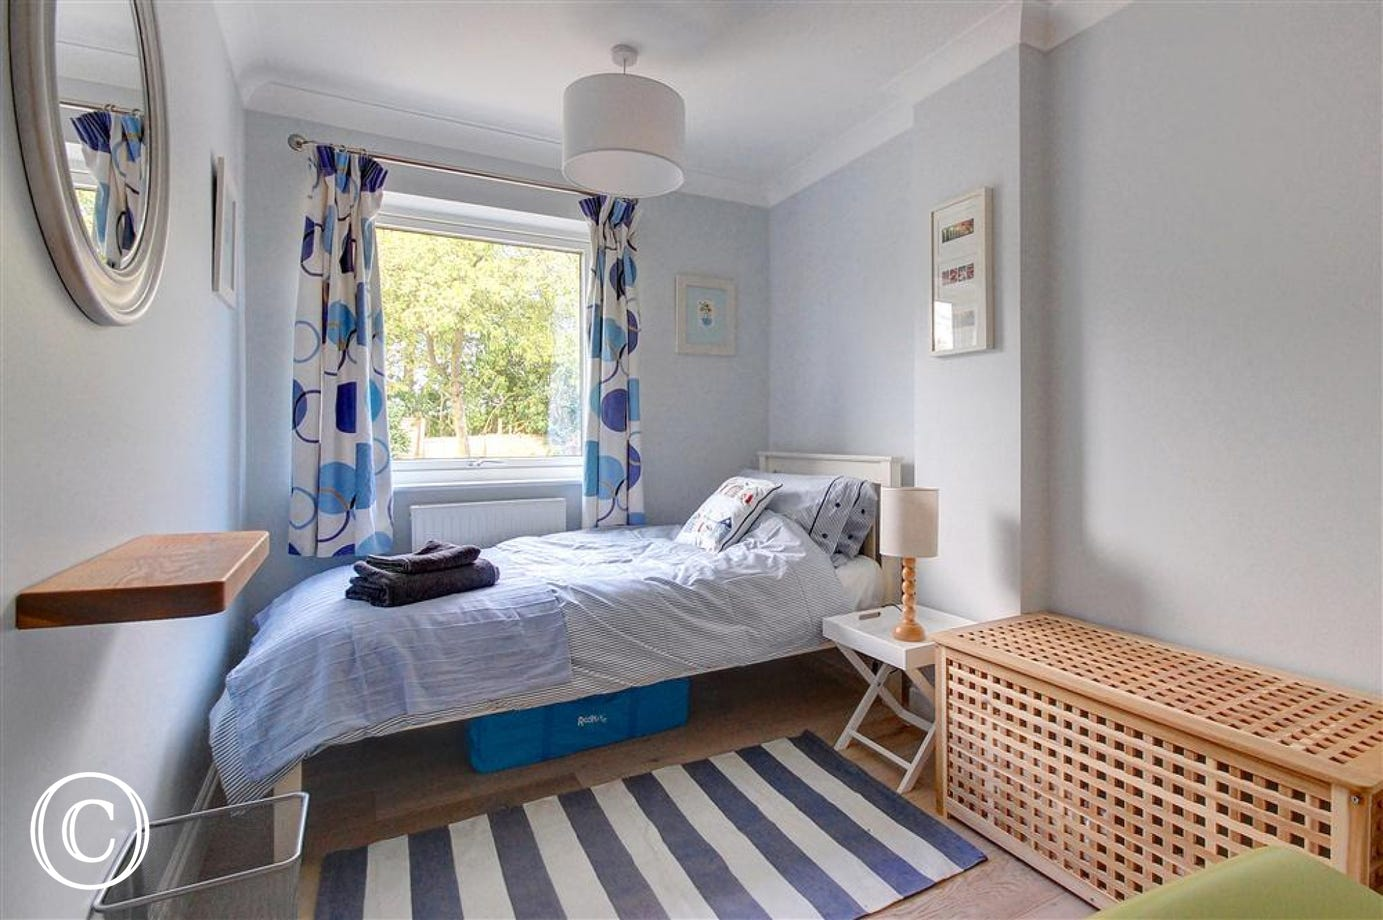 A stripy rug can be found in bedroom three which will sleep one person.